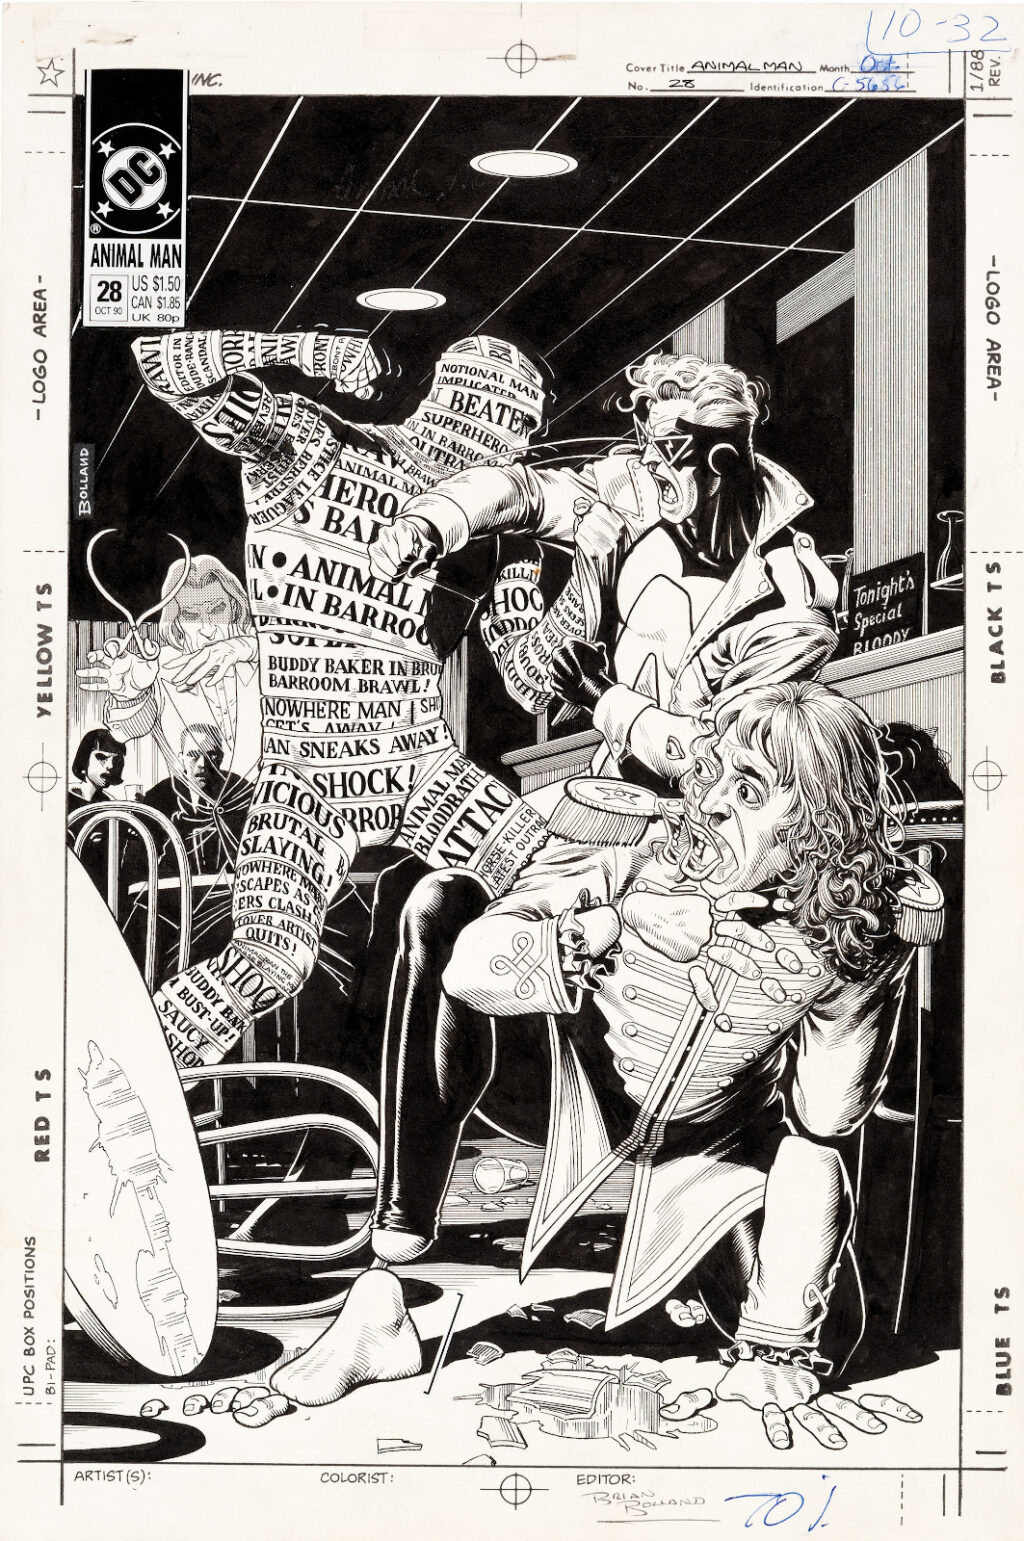 Animal Man issue 28 cover by Brian Bolland